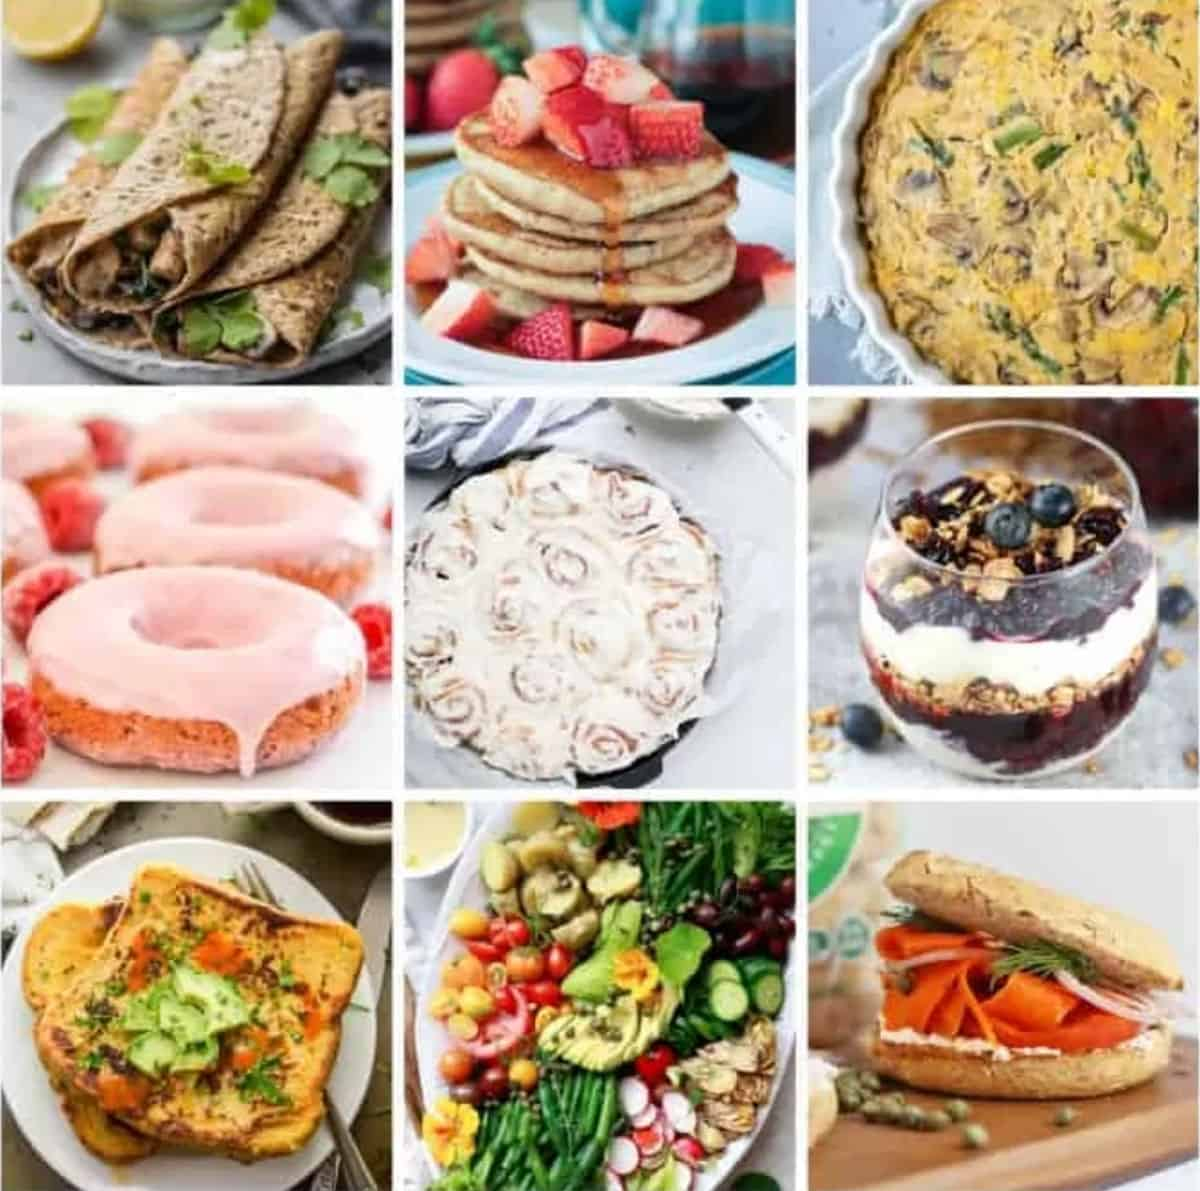 9-photo collage of vegan brunch recipes.